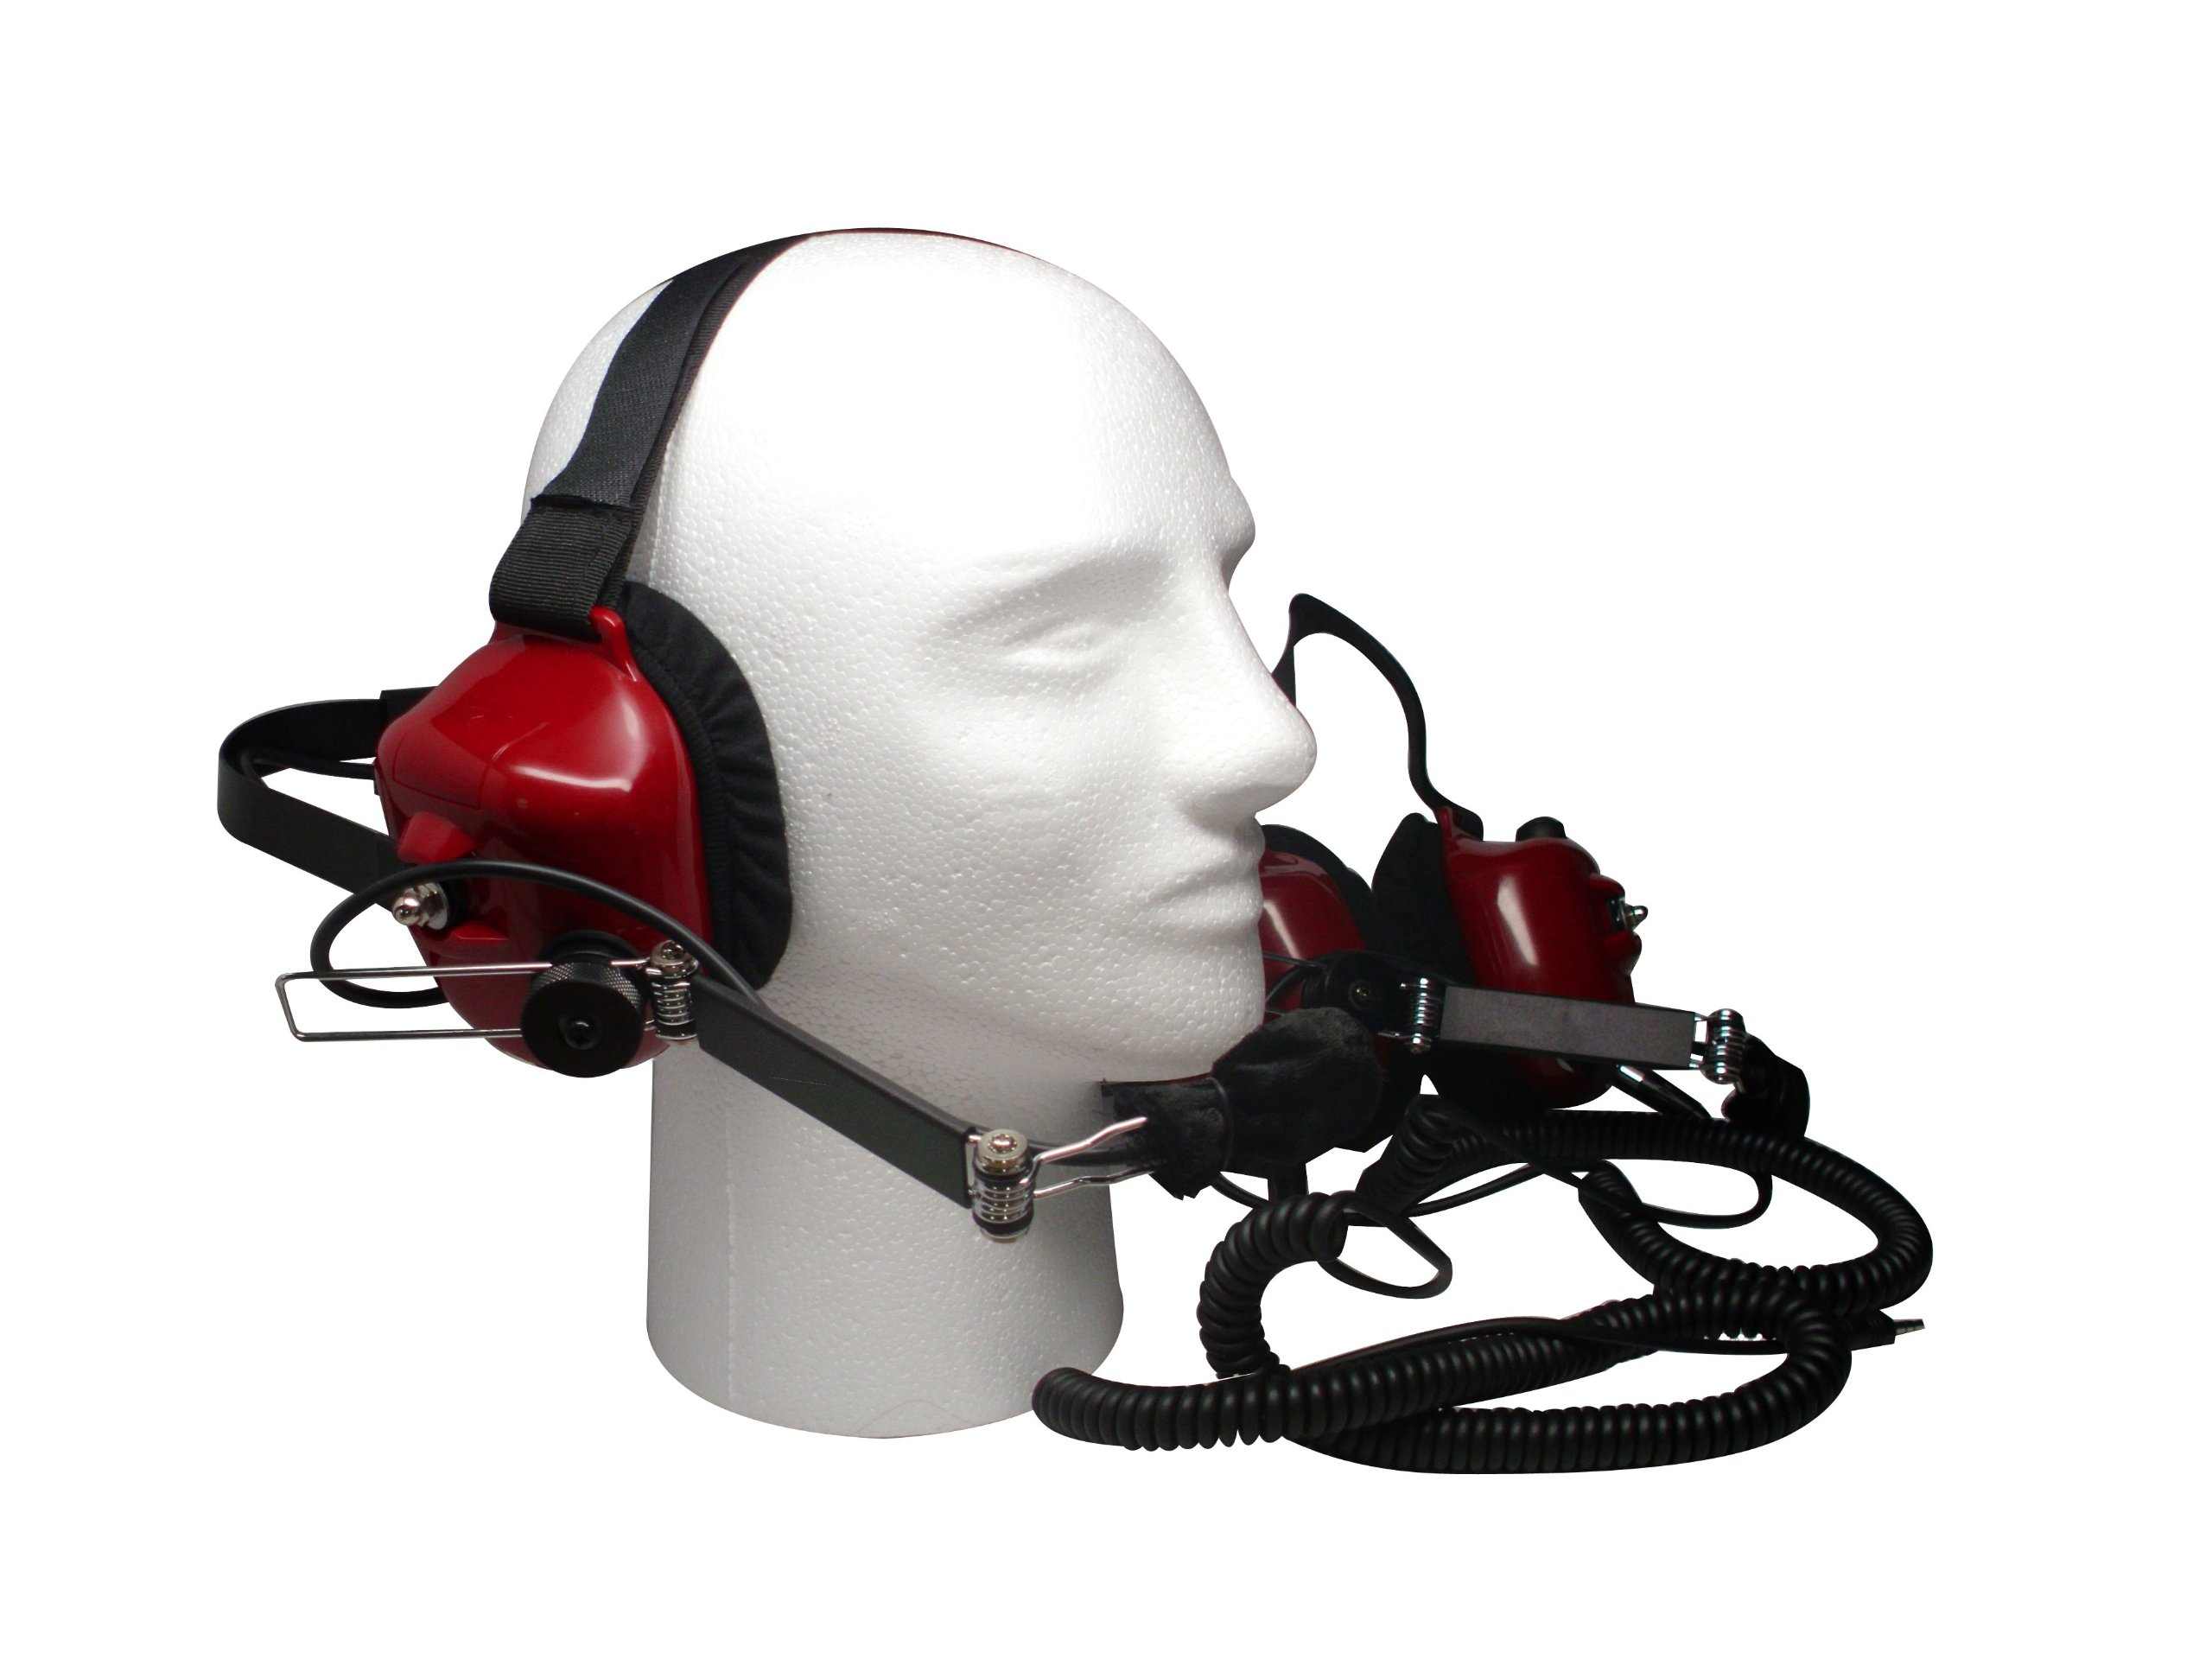 Race Day Electronics Fan Intercom System Two Way Headsets, Red by Race Day Electronics (Image #2)